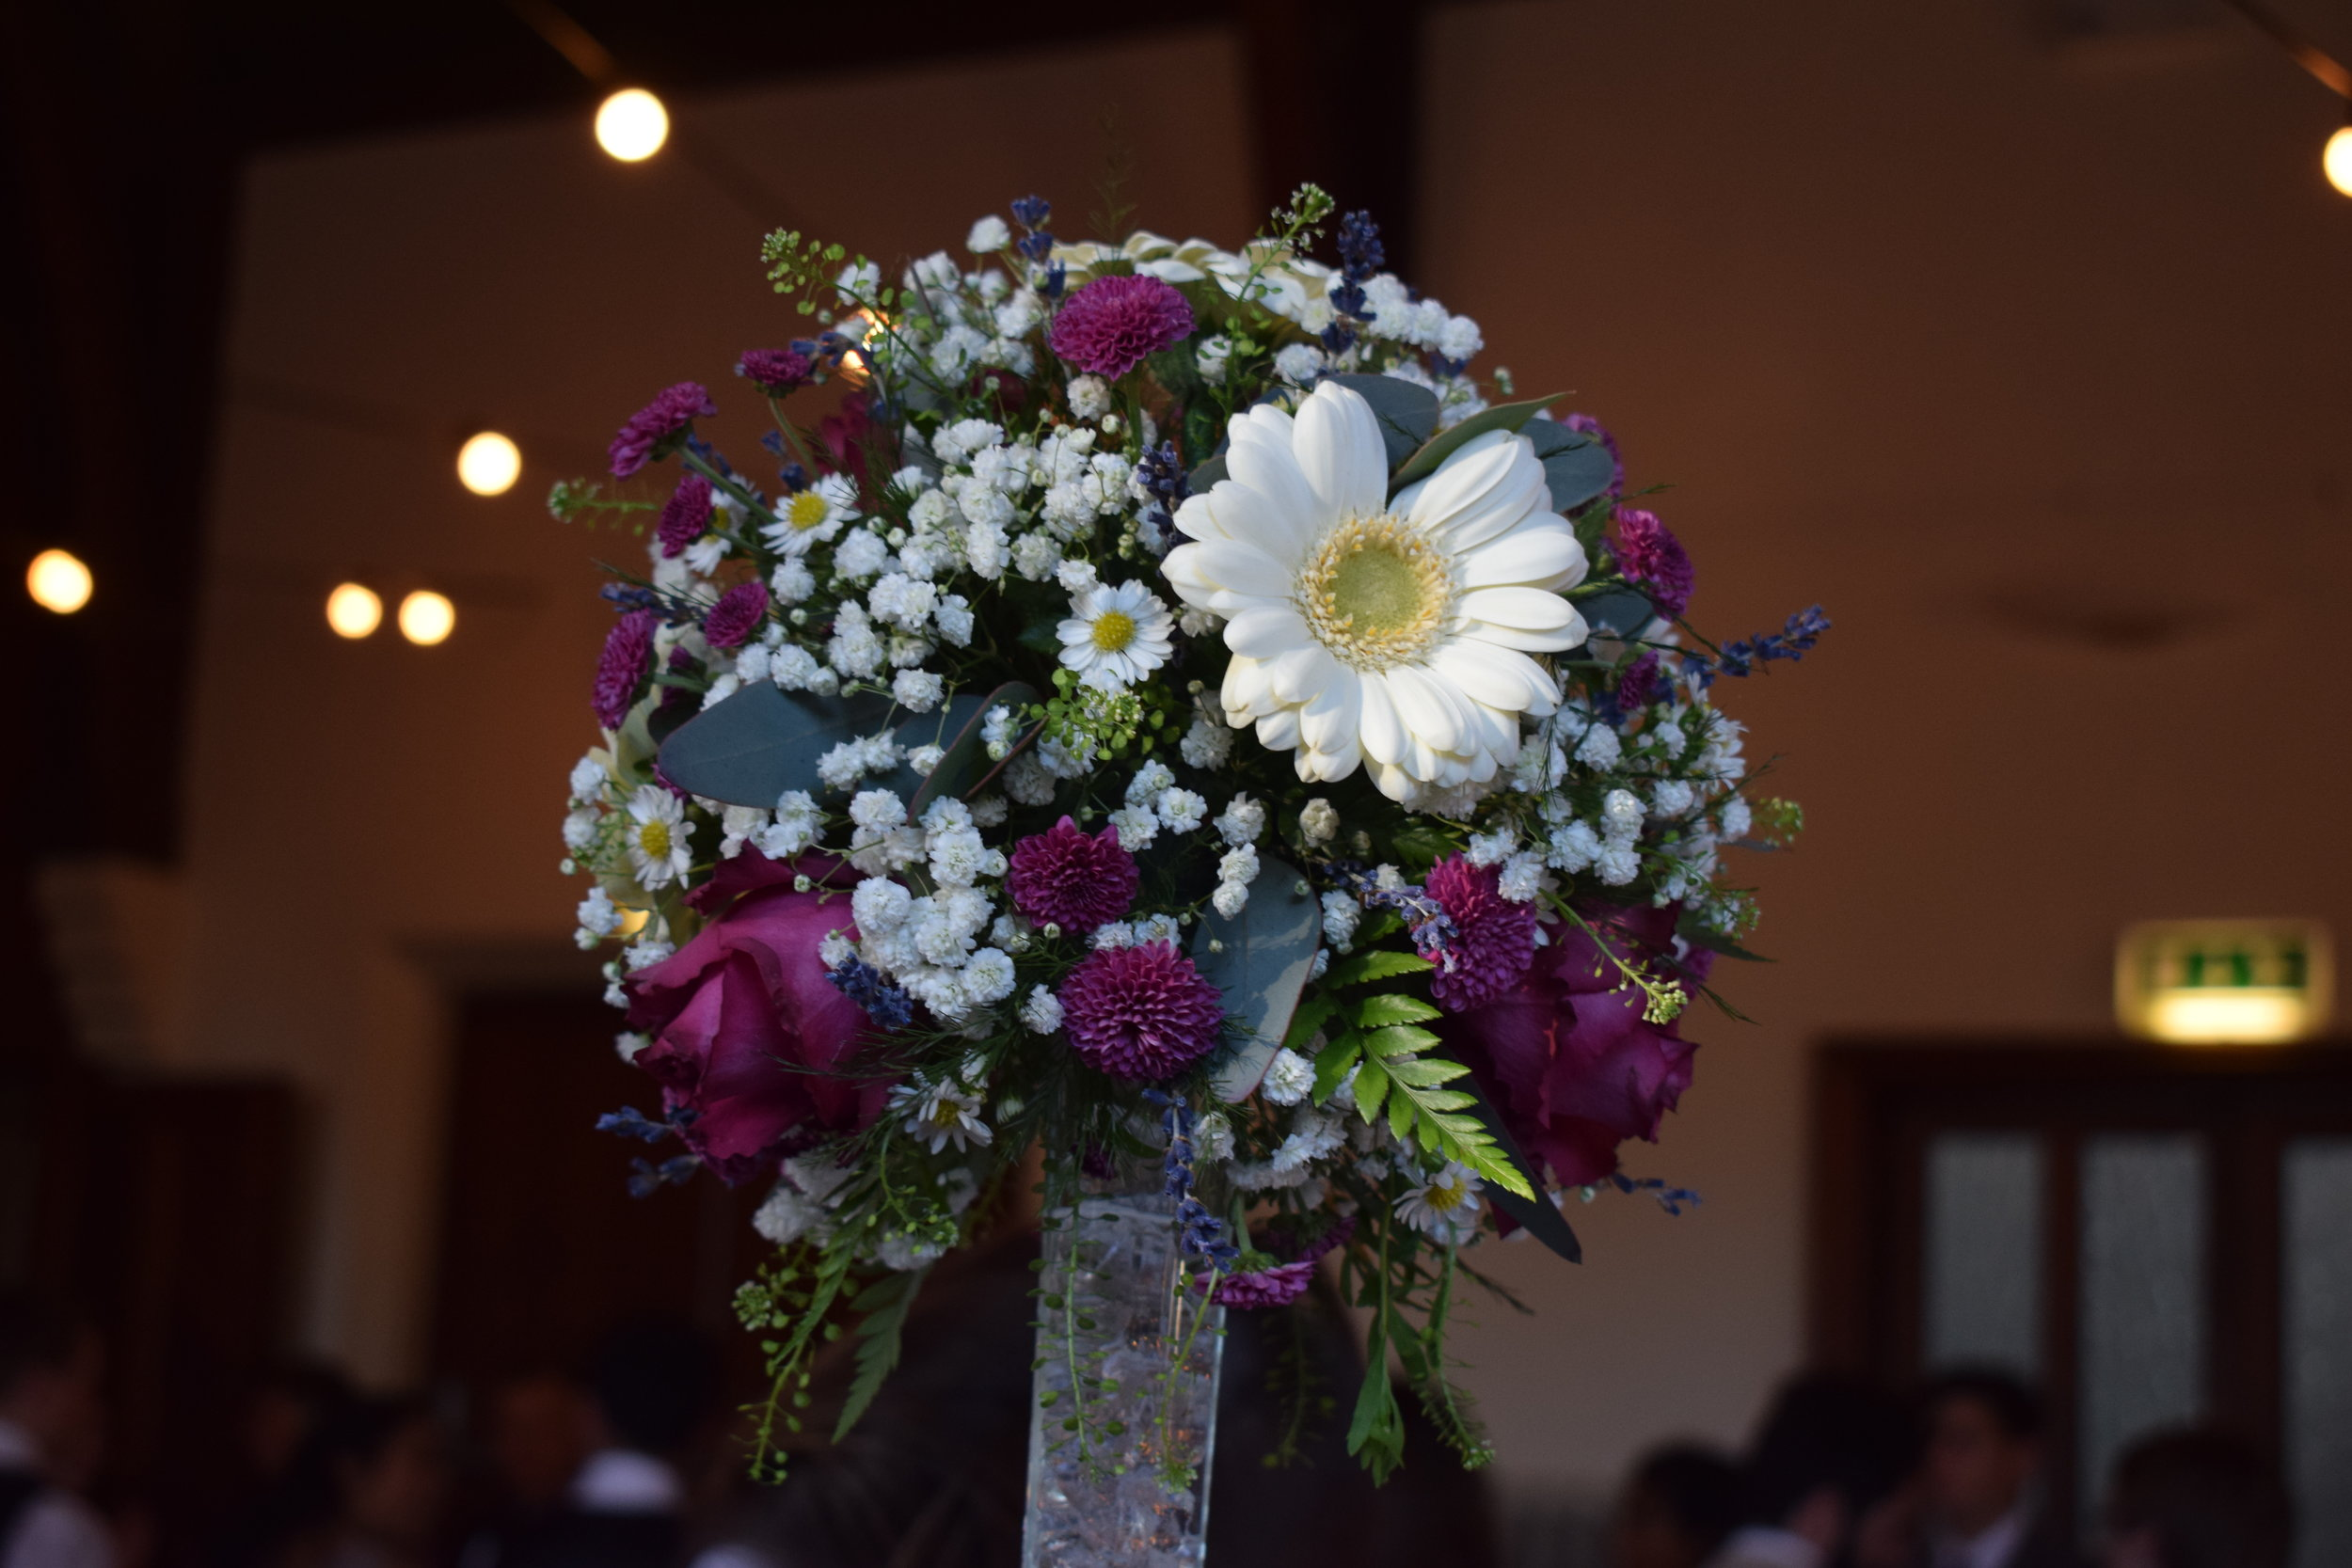 Wedding photo ideas: table centre pieces